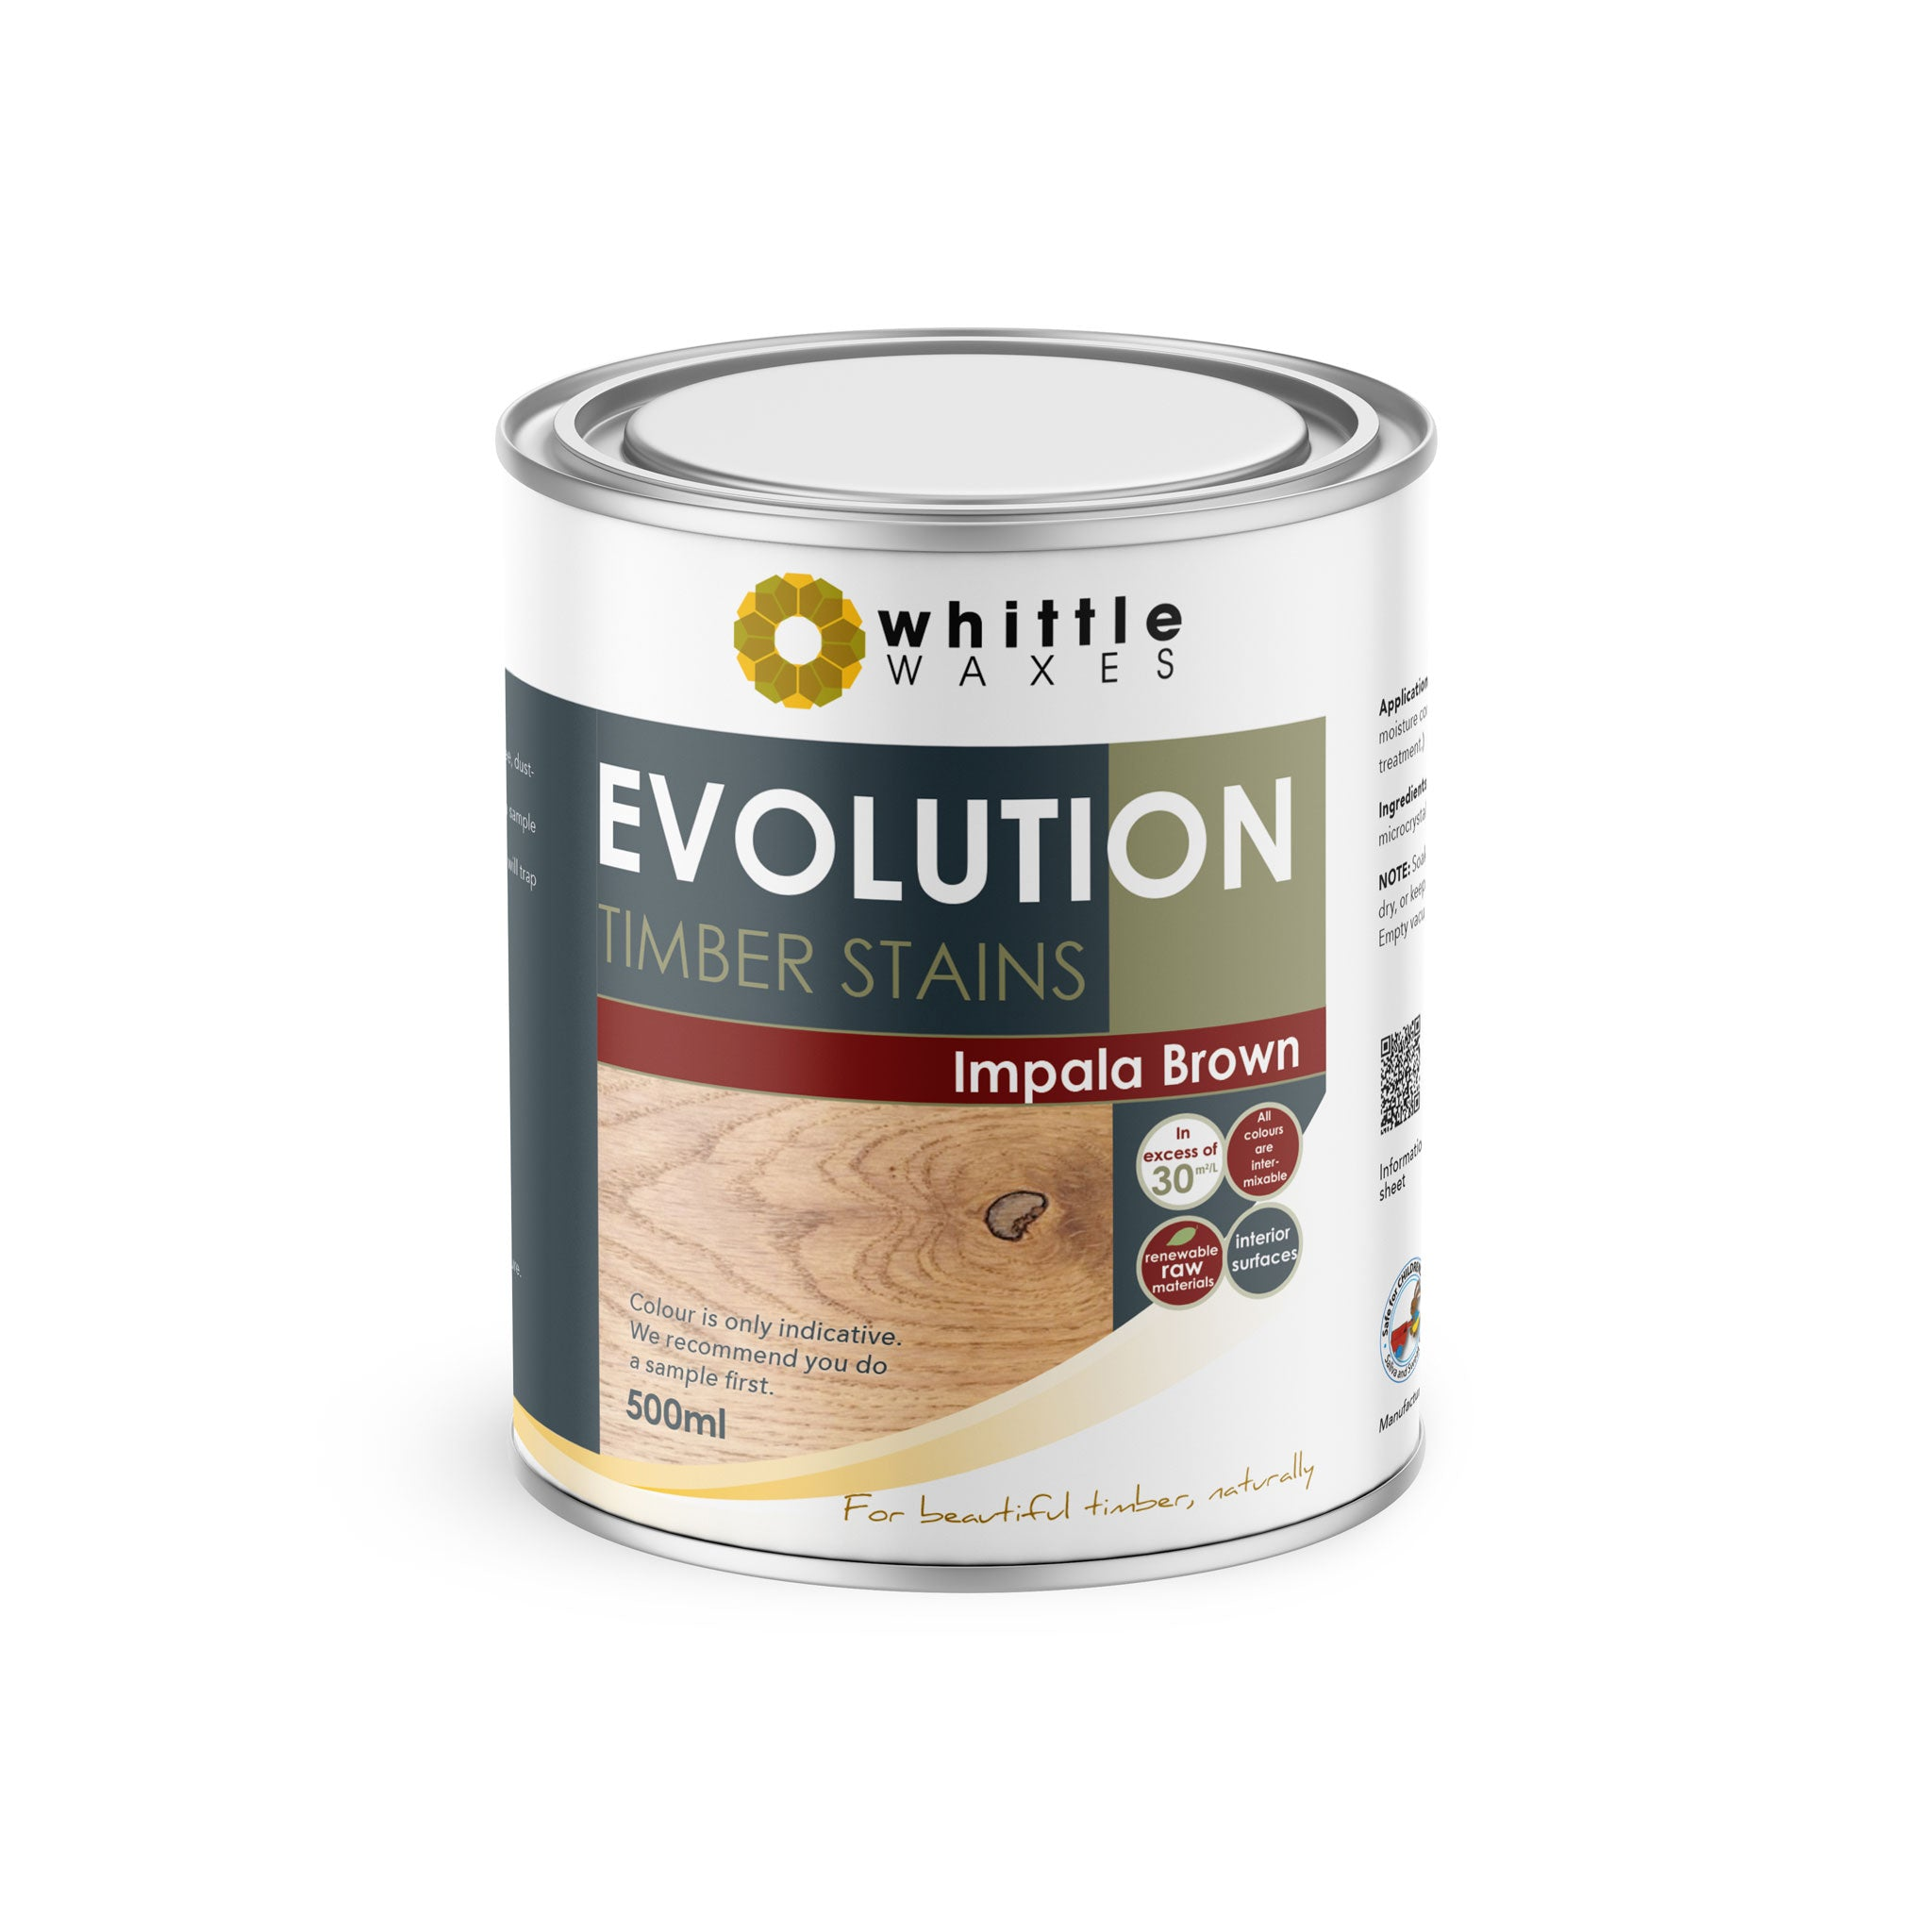 Whittle Waxes Evolution Colours (Impala Brown) - quality timber stain - 500ml